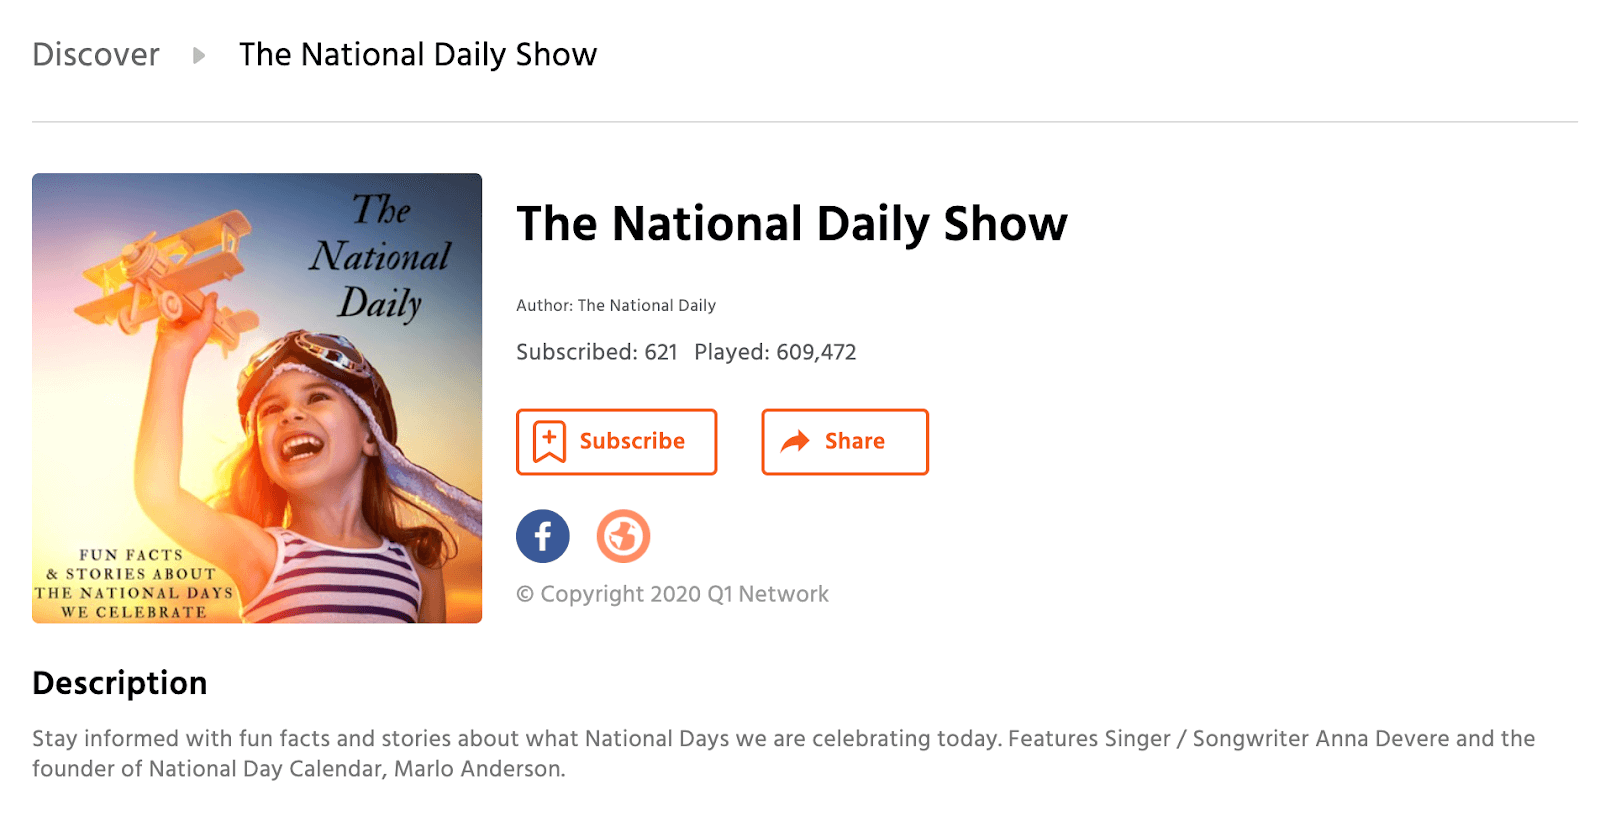 National Daily Show main page